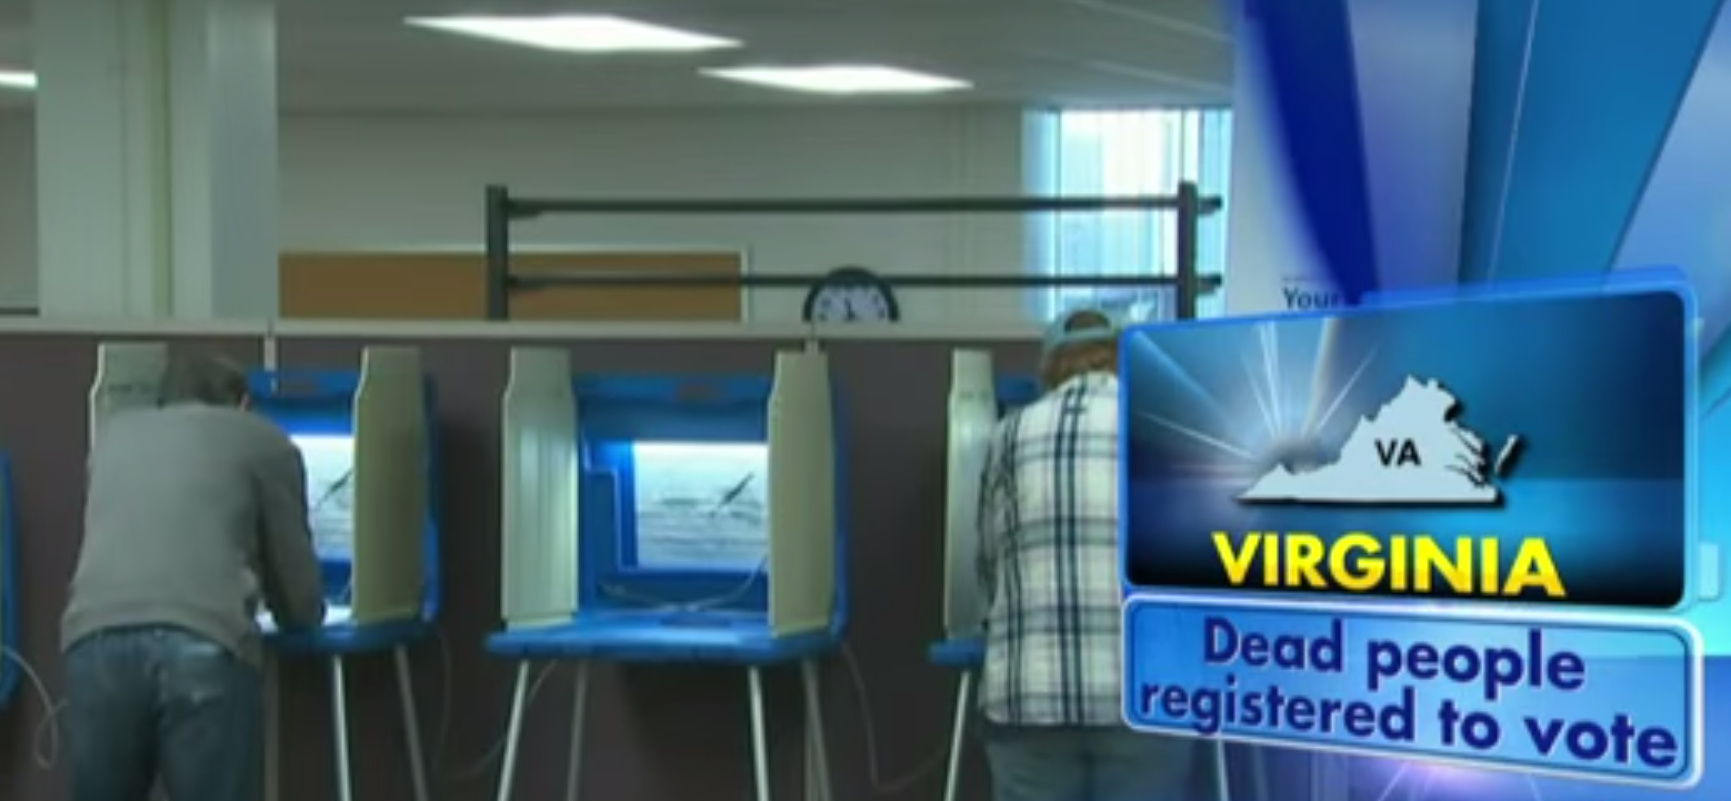 Student Sentenced To Only 100 Days In Prison After Registering Dead People To Vote Democrat